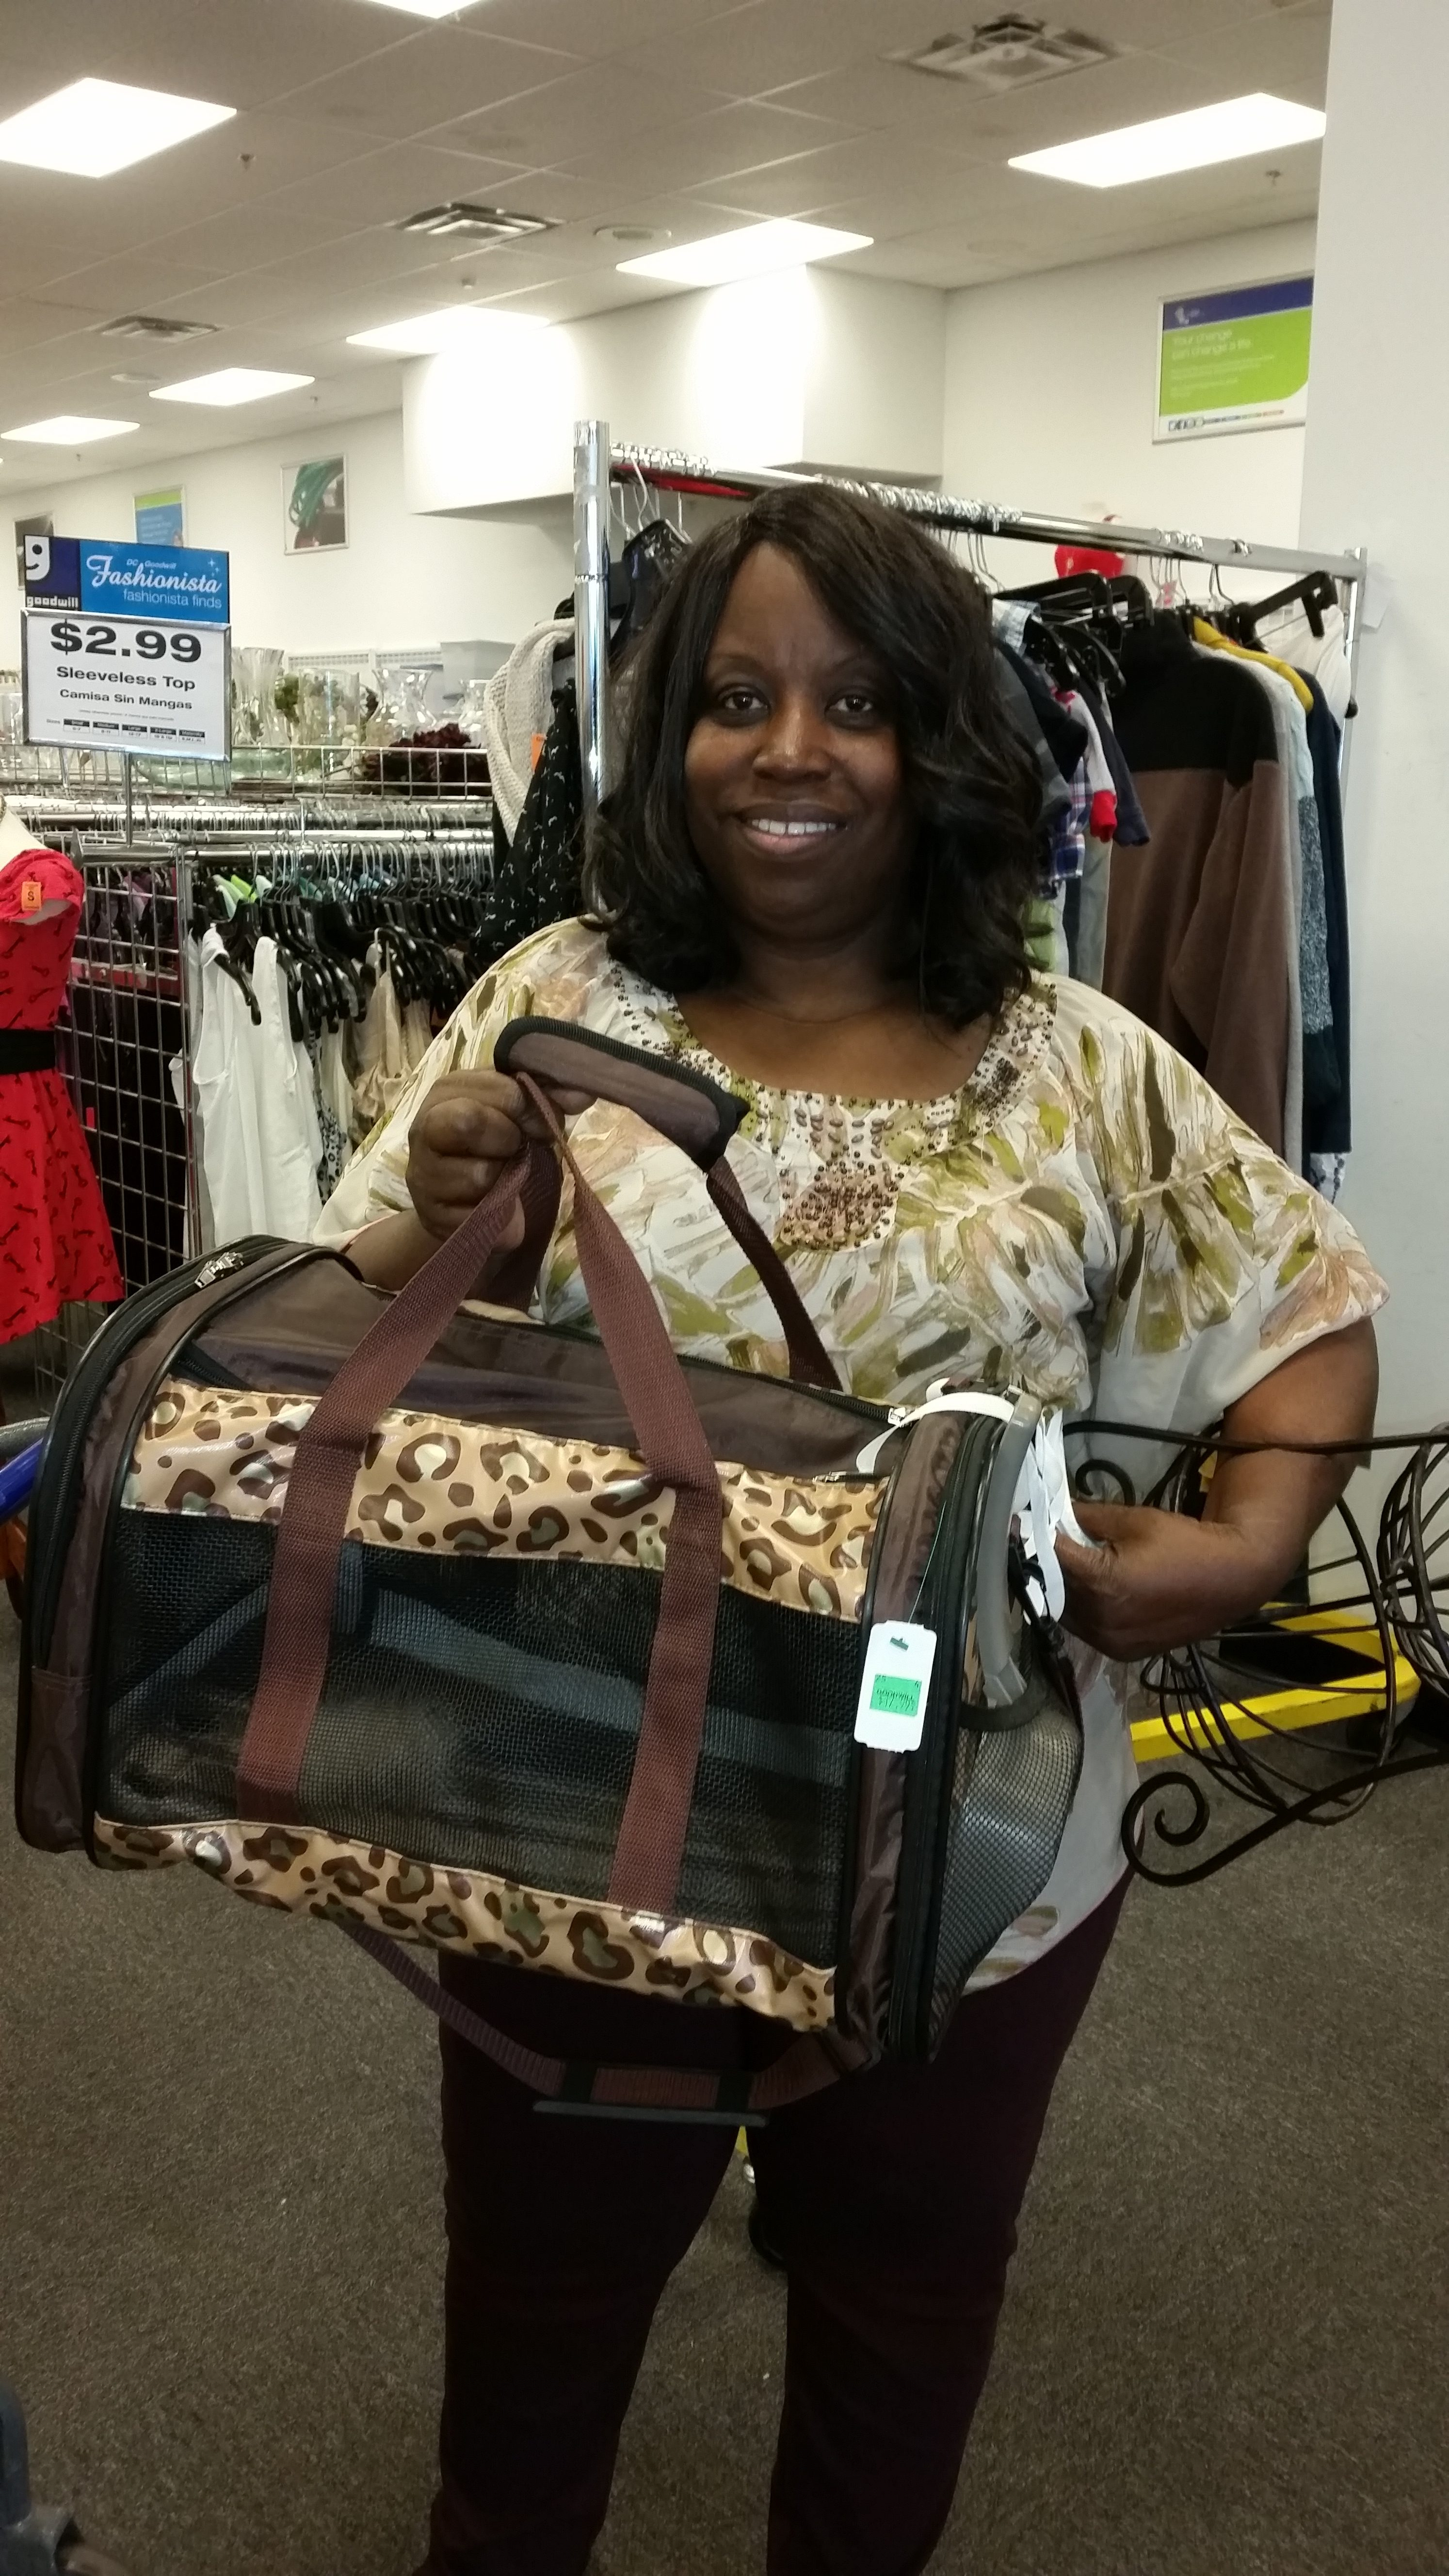 Meetup shopper poses with a pet carrier found at Goodwill